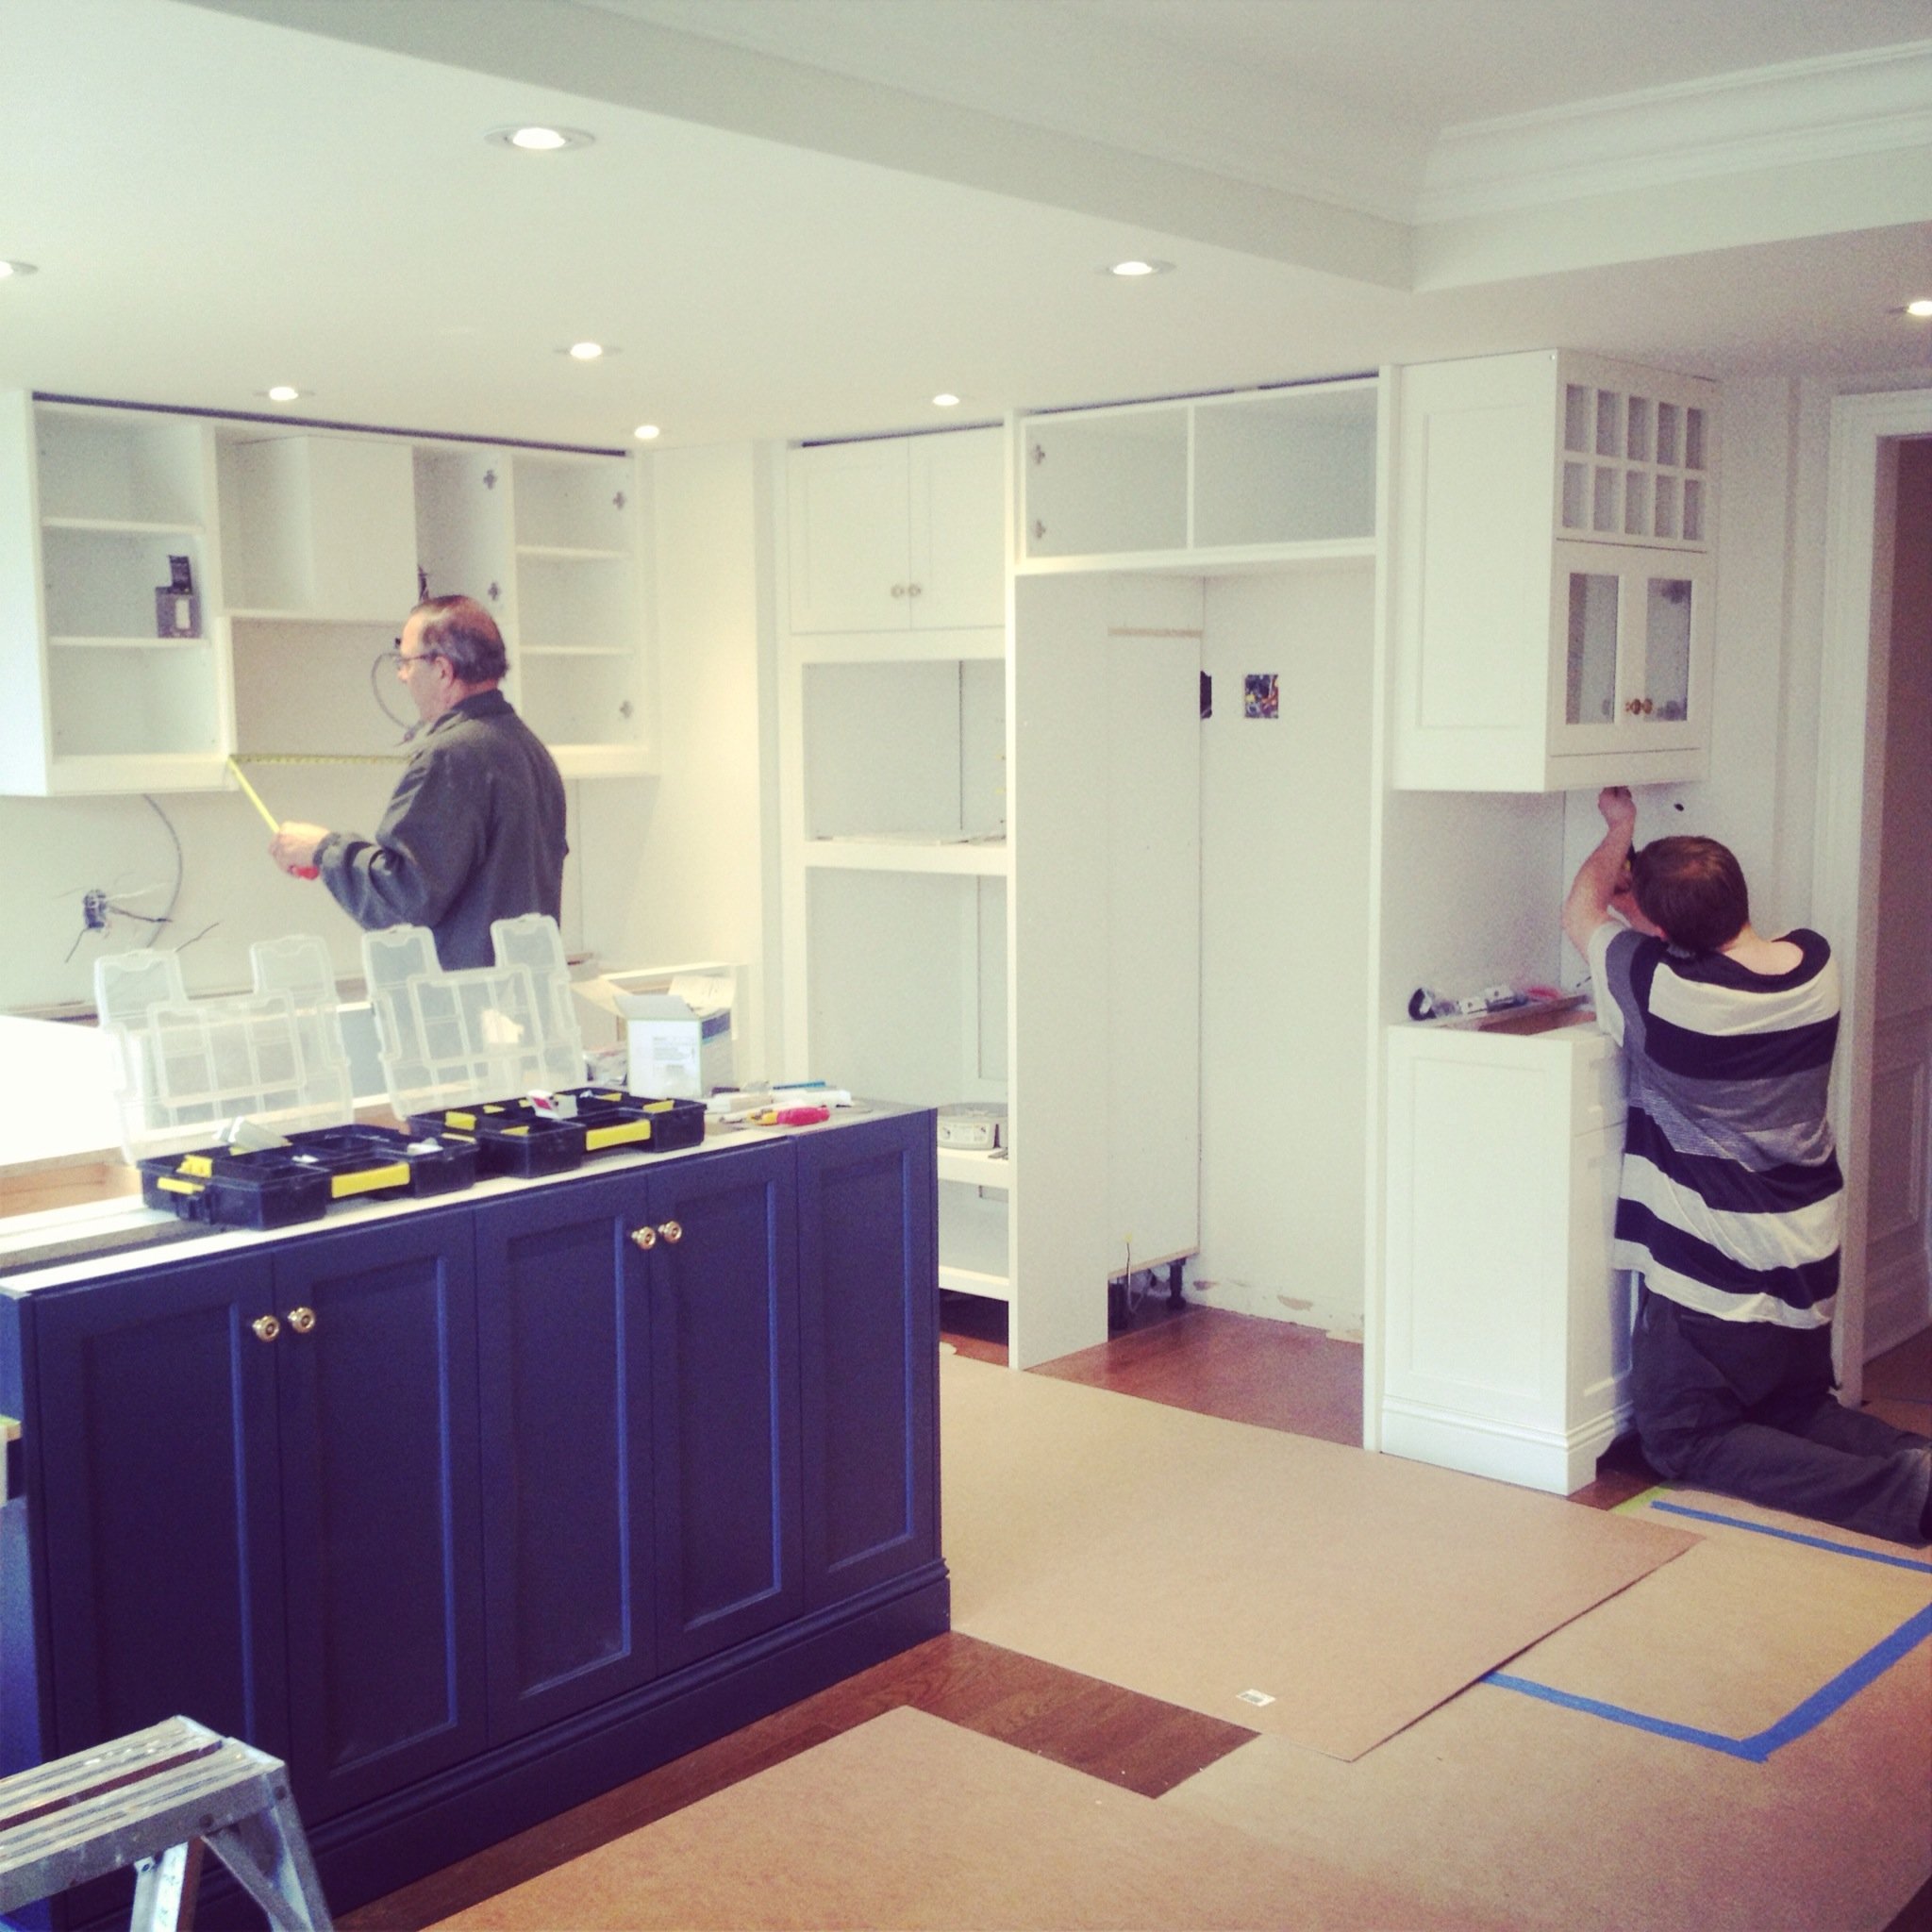 The kitchen coming together this week!